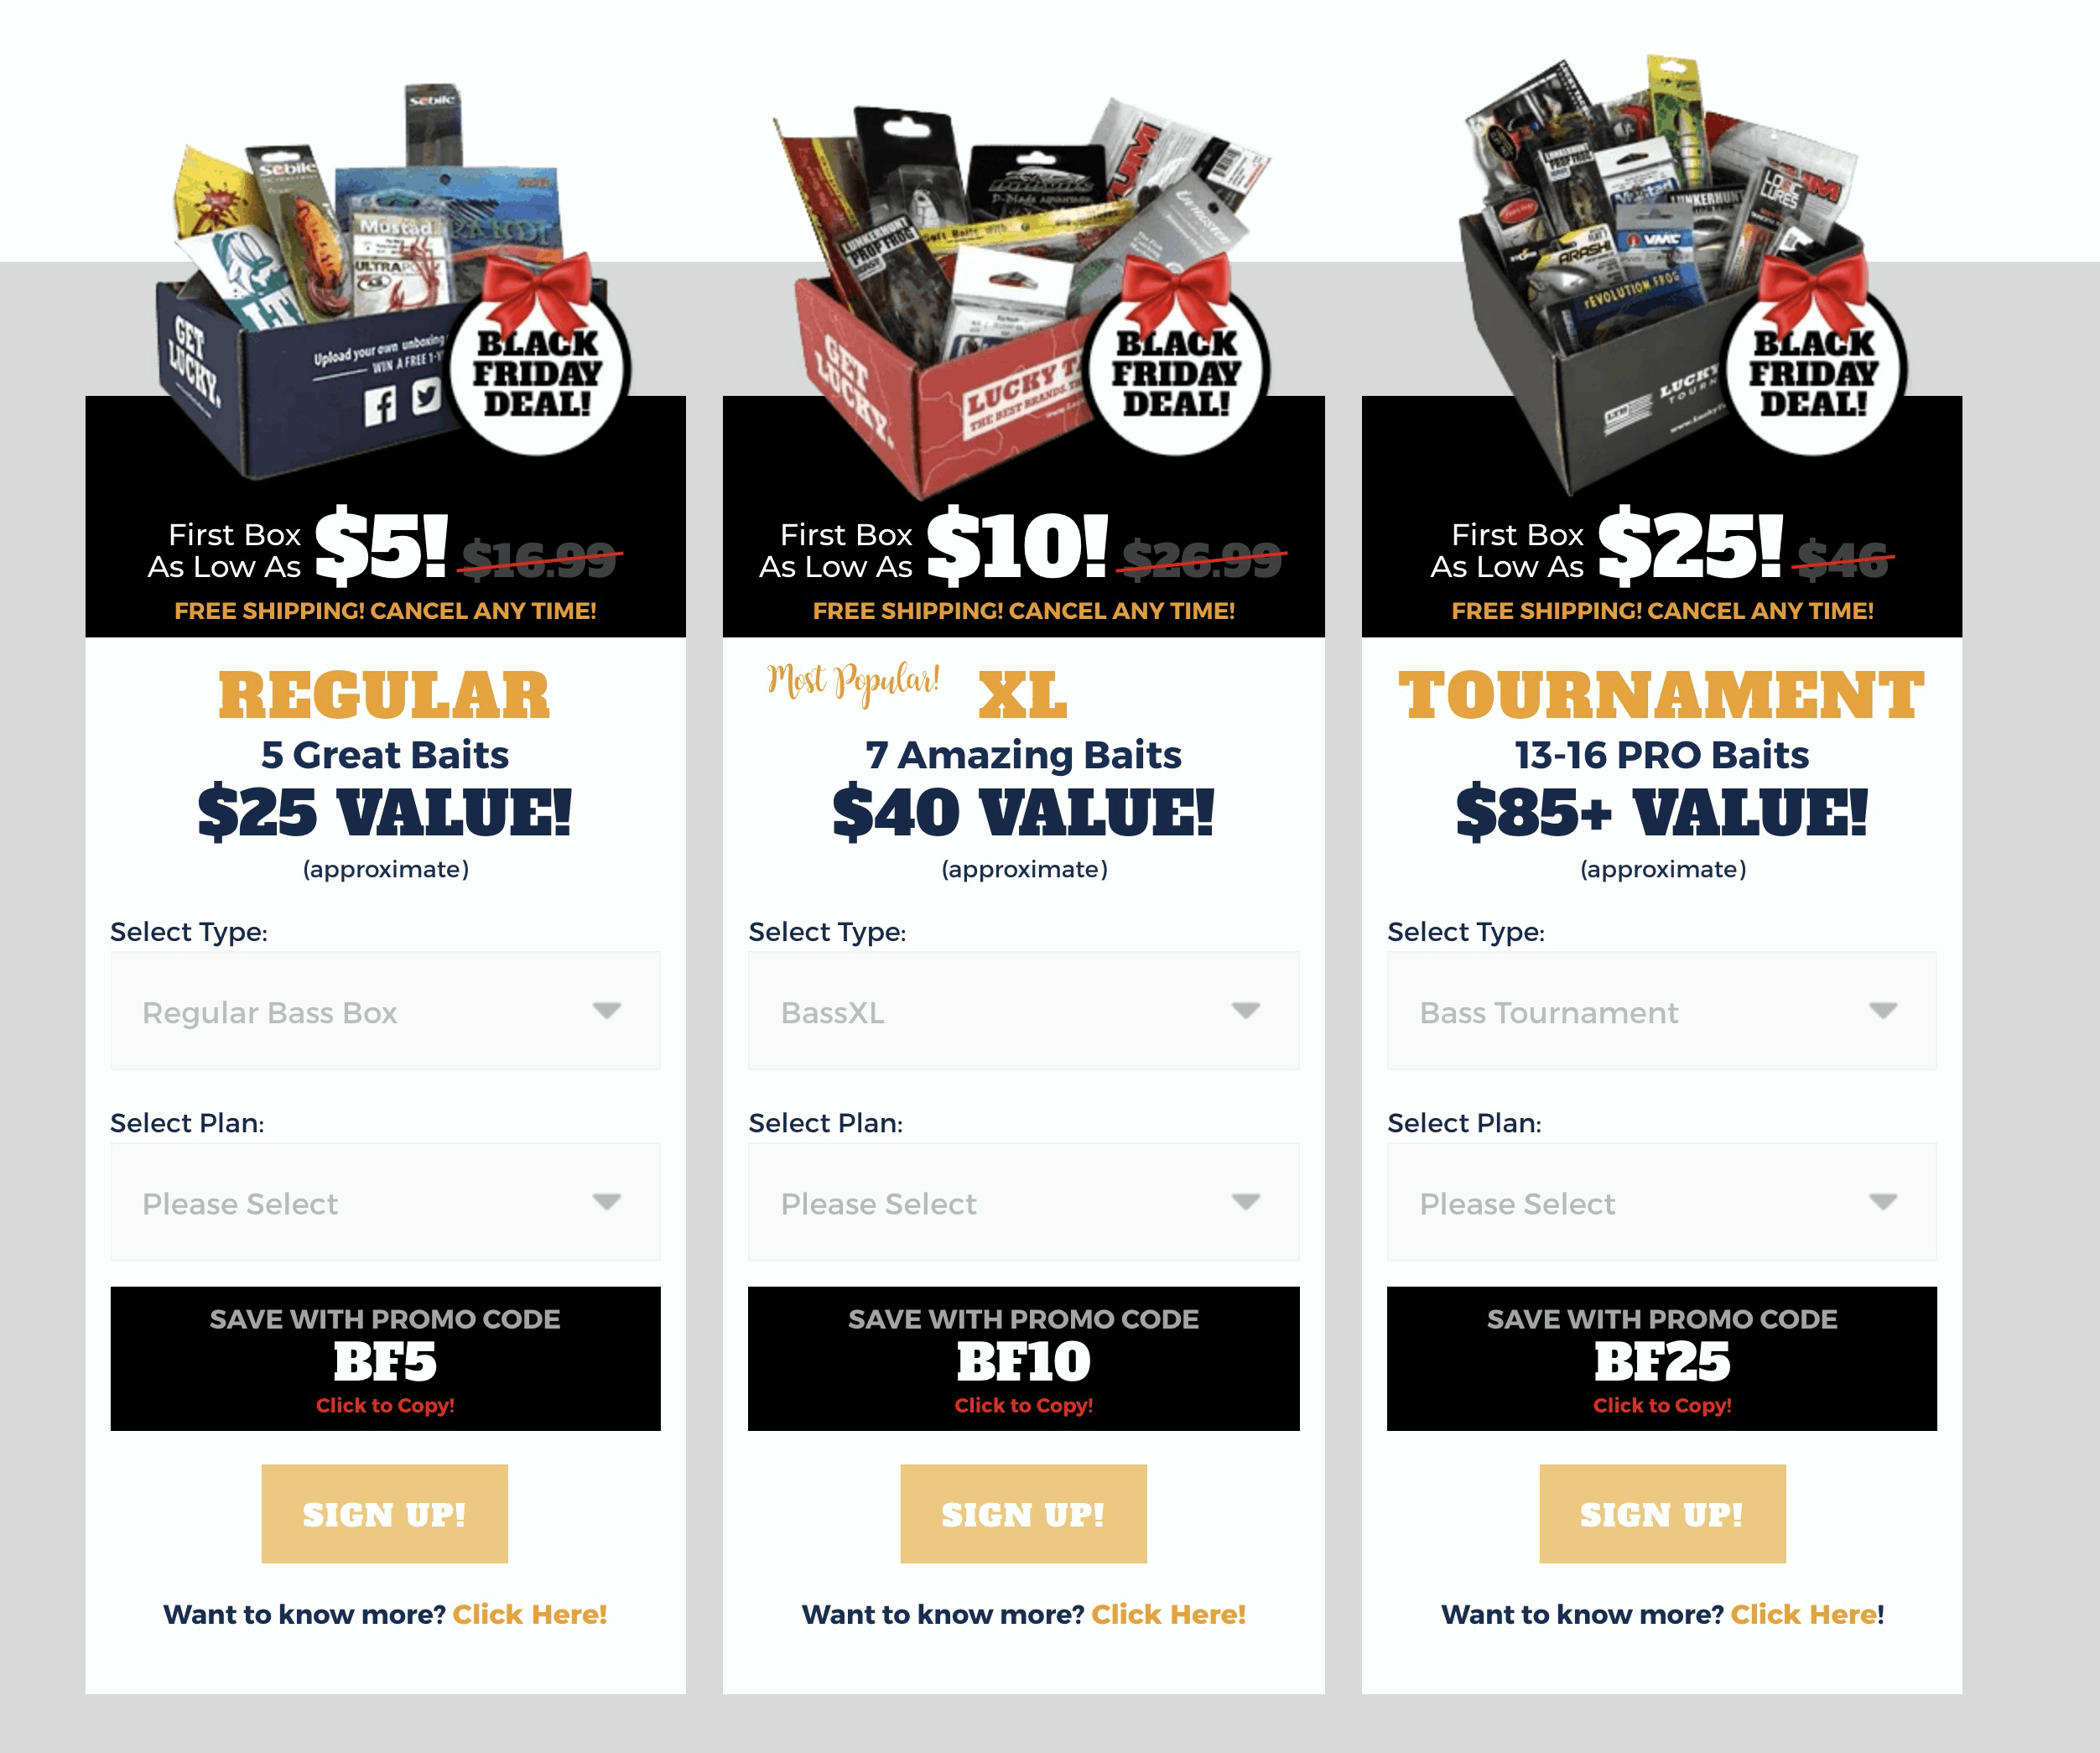 Lucky Tackle Box Black Friday Deal: Get your first box as low as $5!